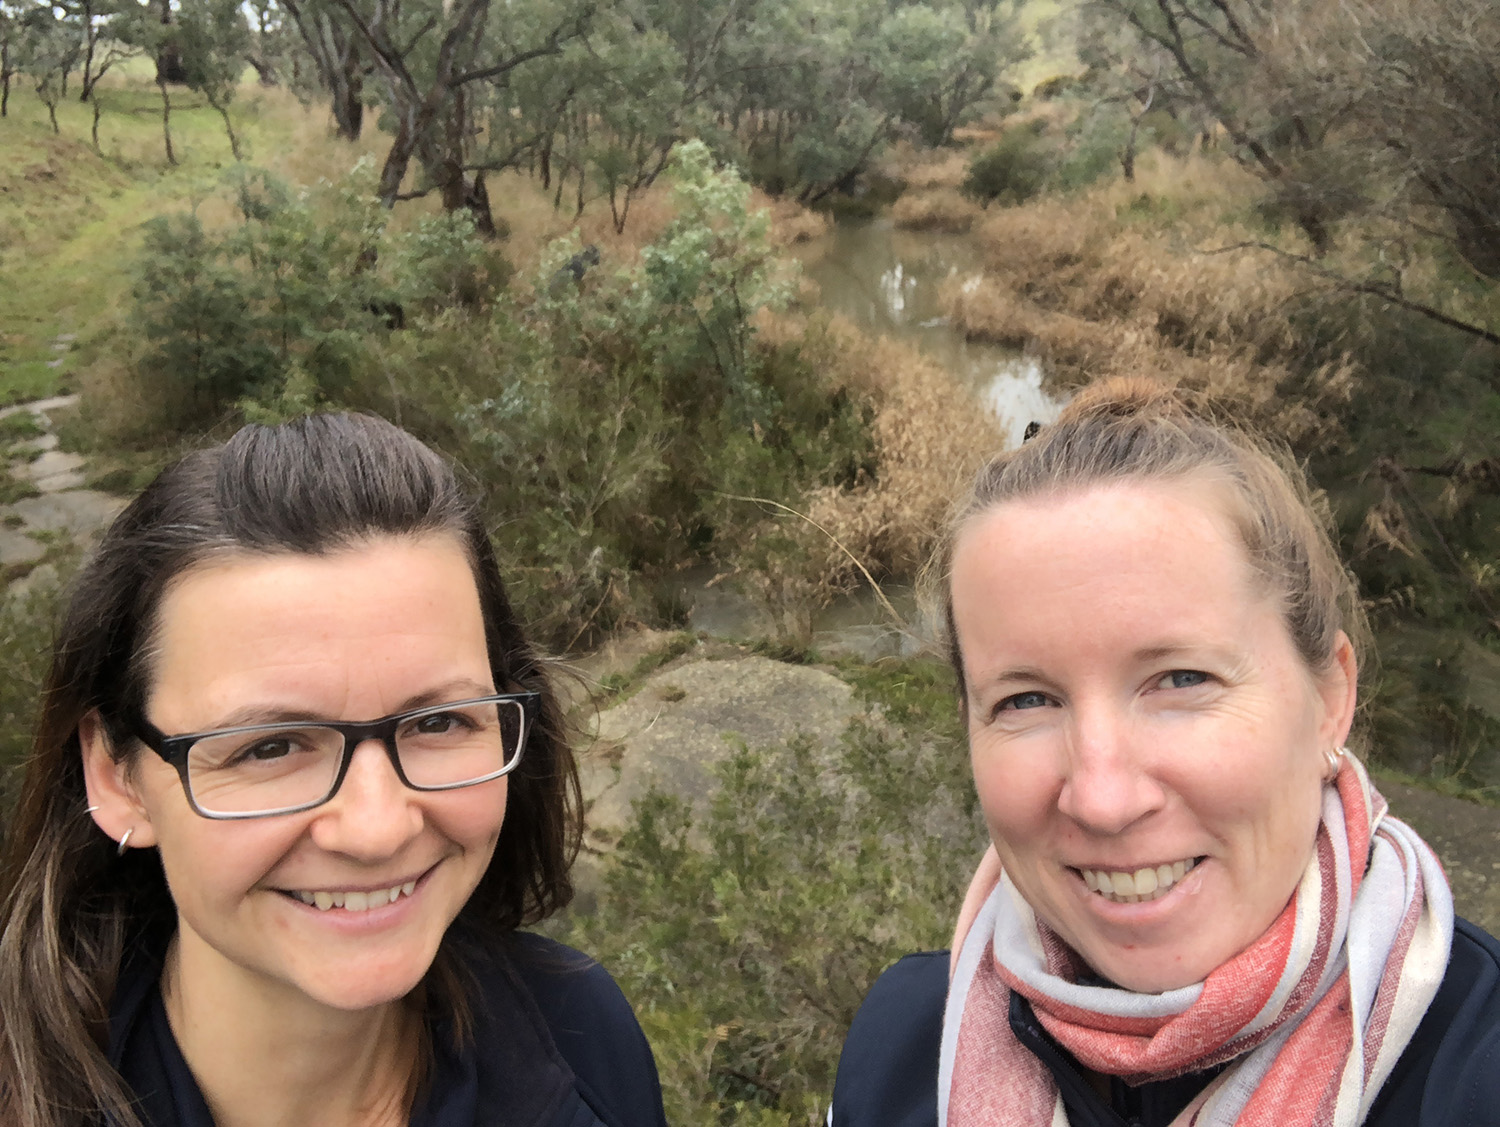 Kirsten and Nat catching up in person as part of the Kilmore Offset Project, photo credit: NECMA